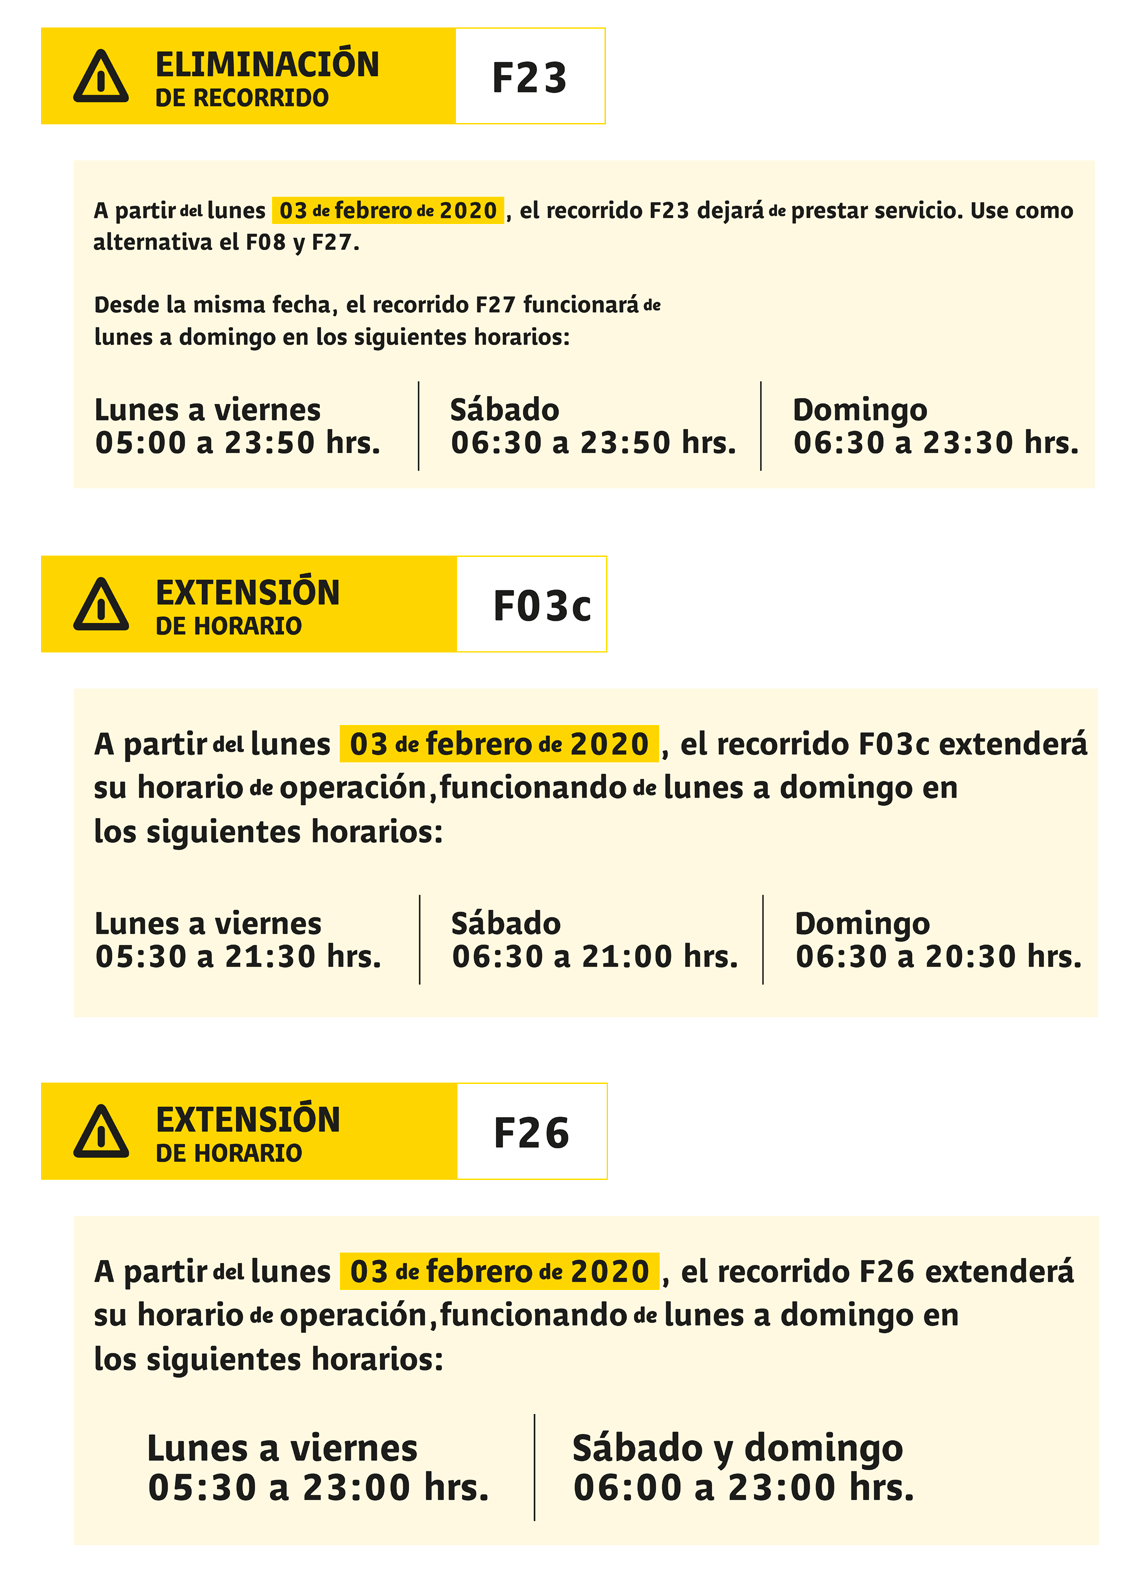 F23 route extension poster and schedule extensions for F03c and F26 routes.